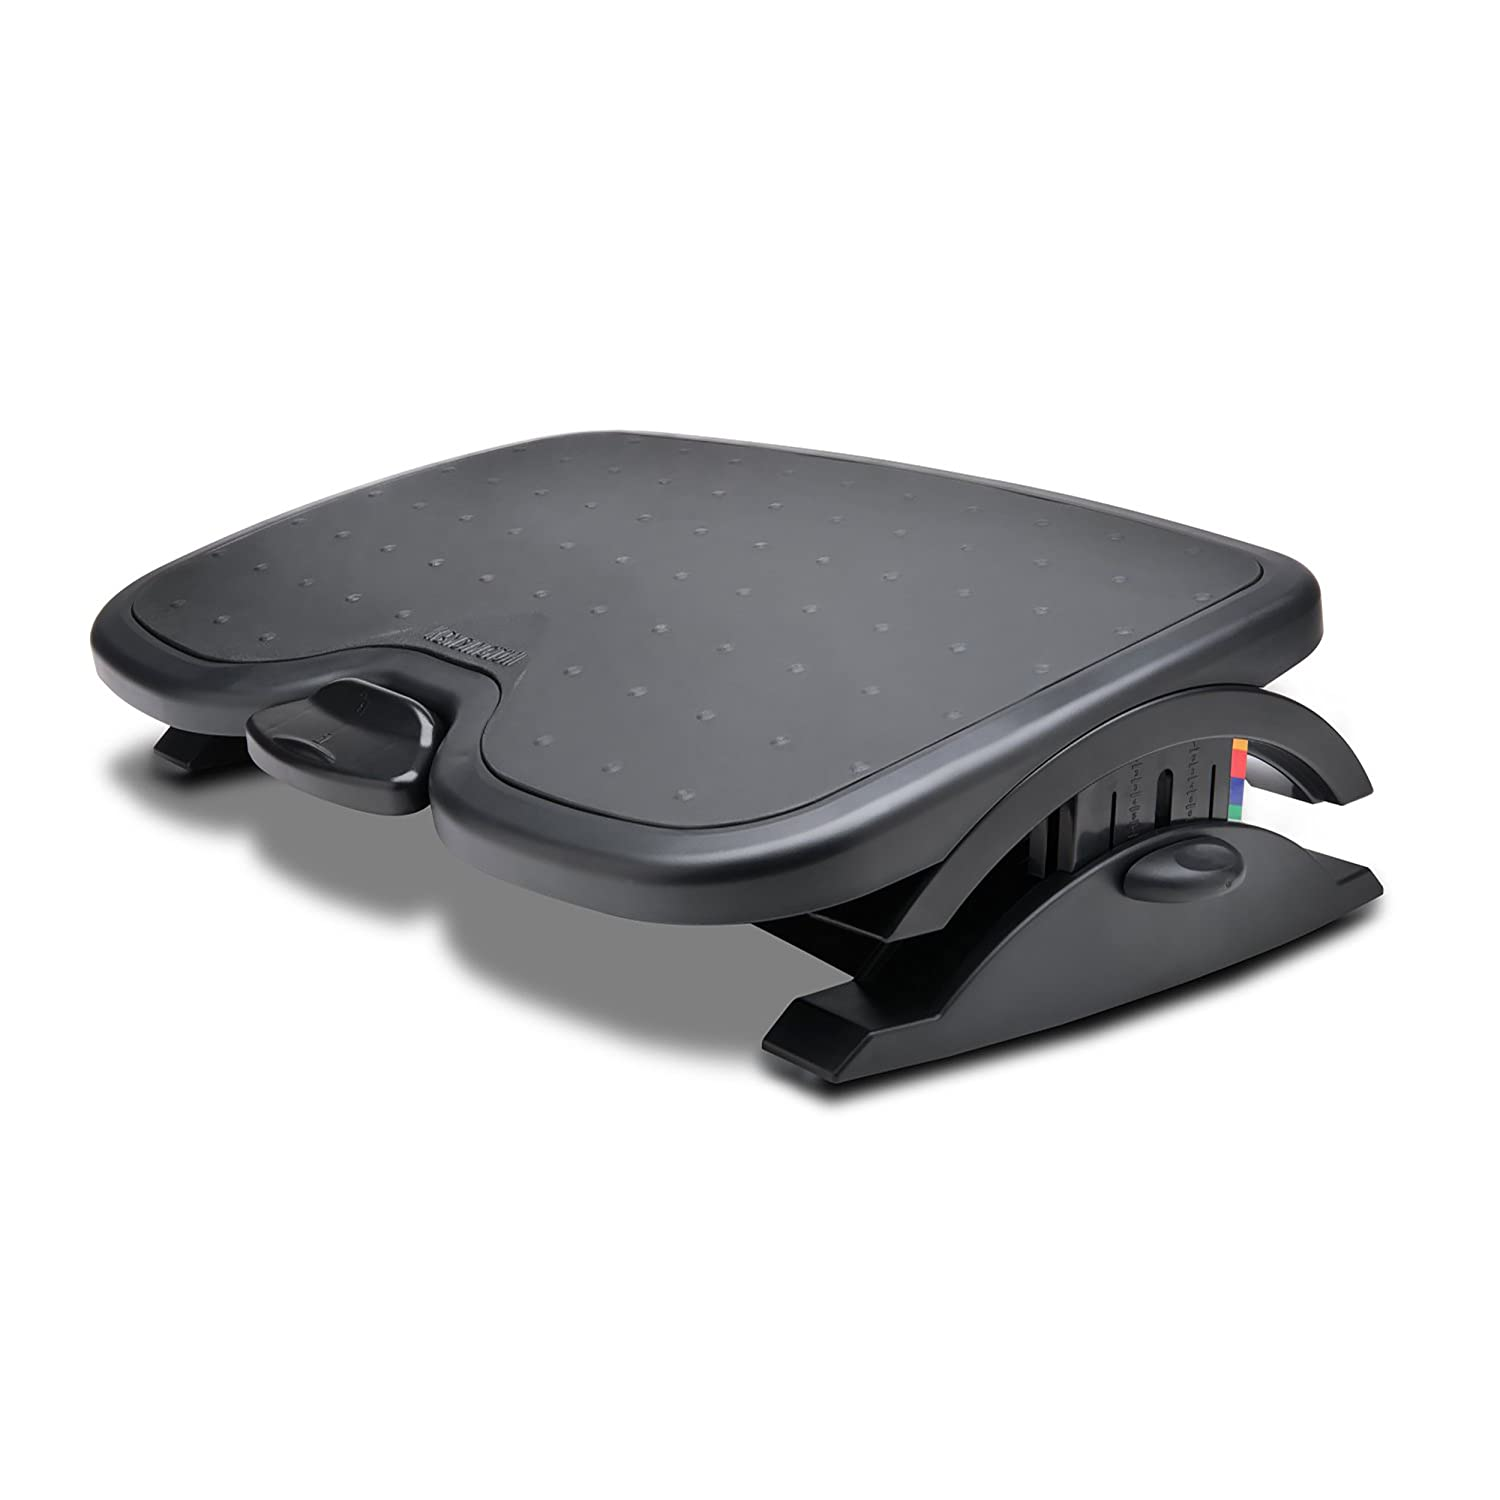 Kensington SoleRest - Adjustable Ergonomic Foot Rest - Black (56148) Computer Peripheral Other Computer_Peripherals Footrest